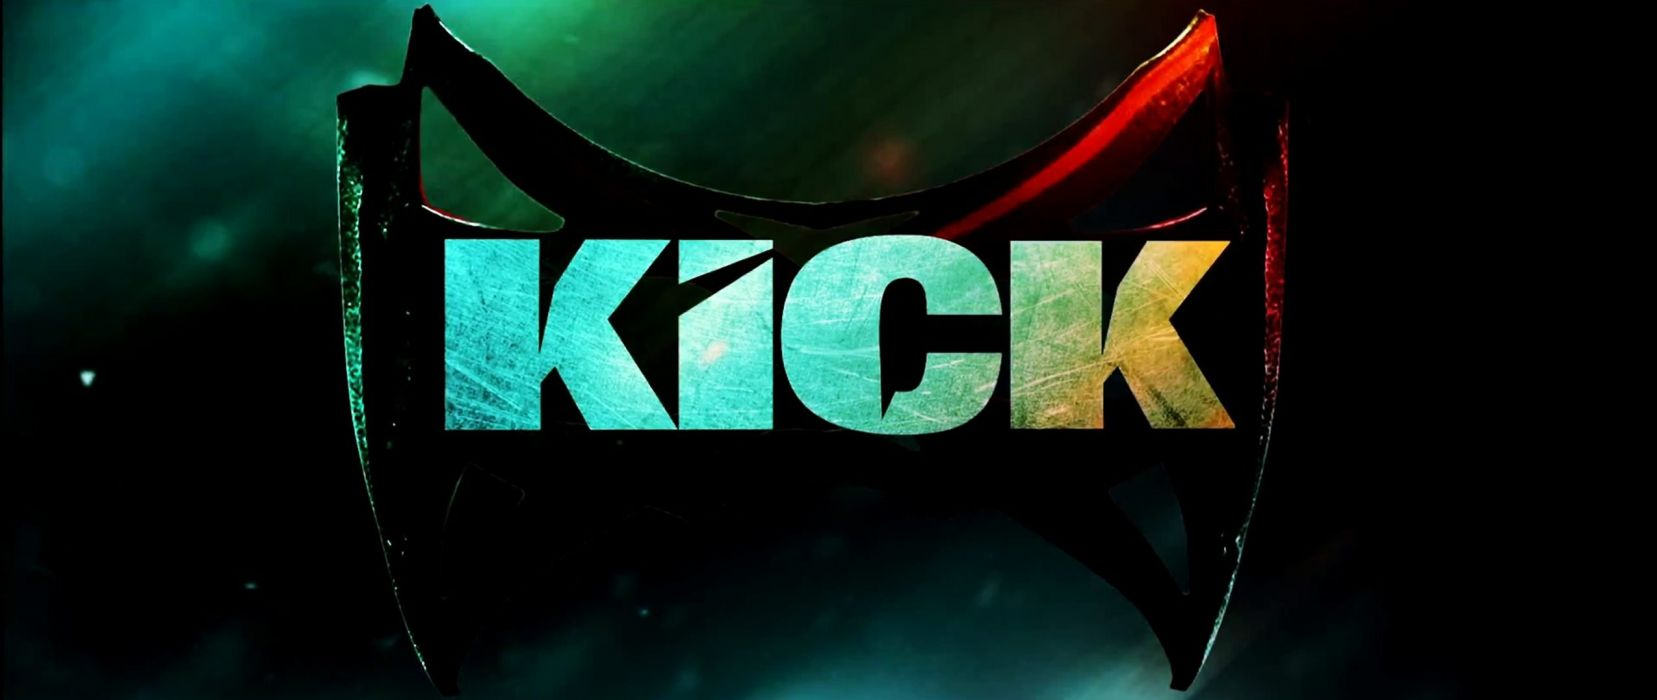 KICK bollywood action thriller comedy romance 1kick wallpaper